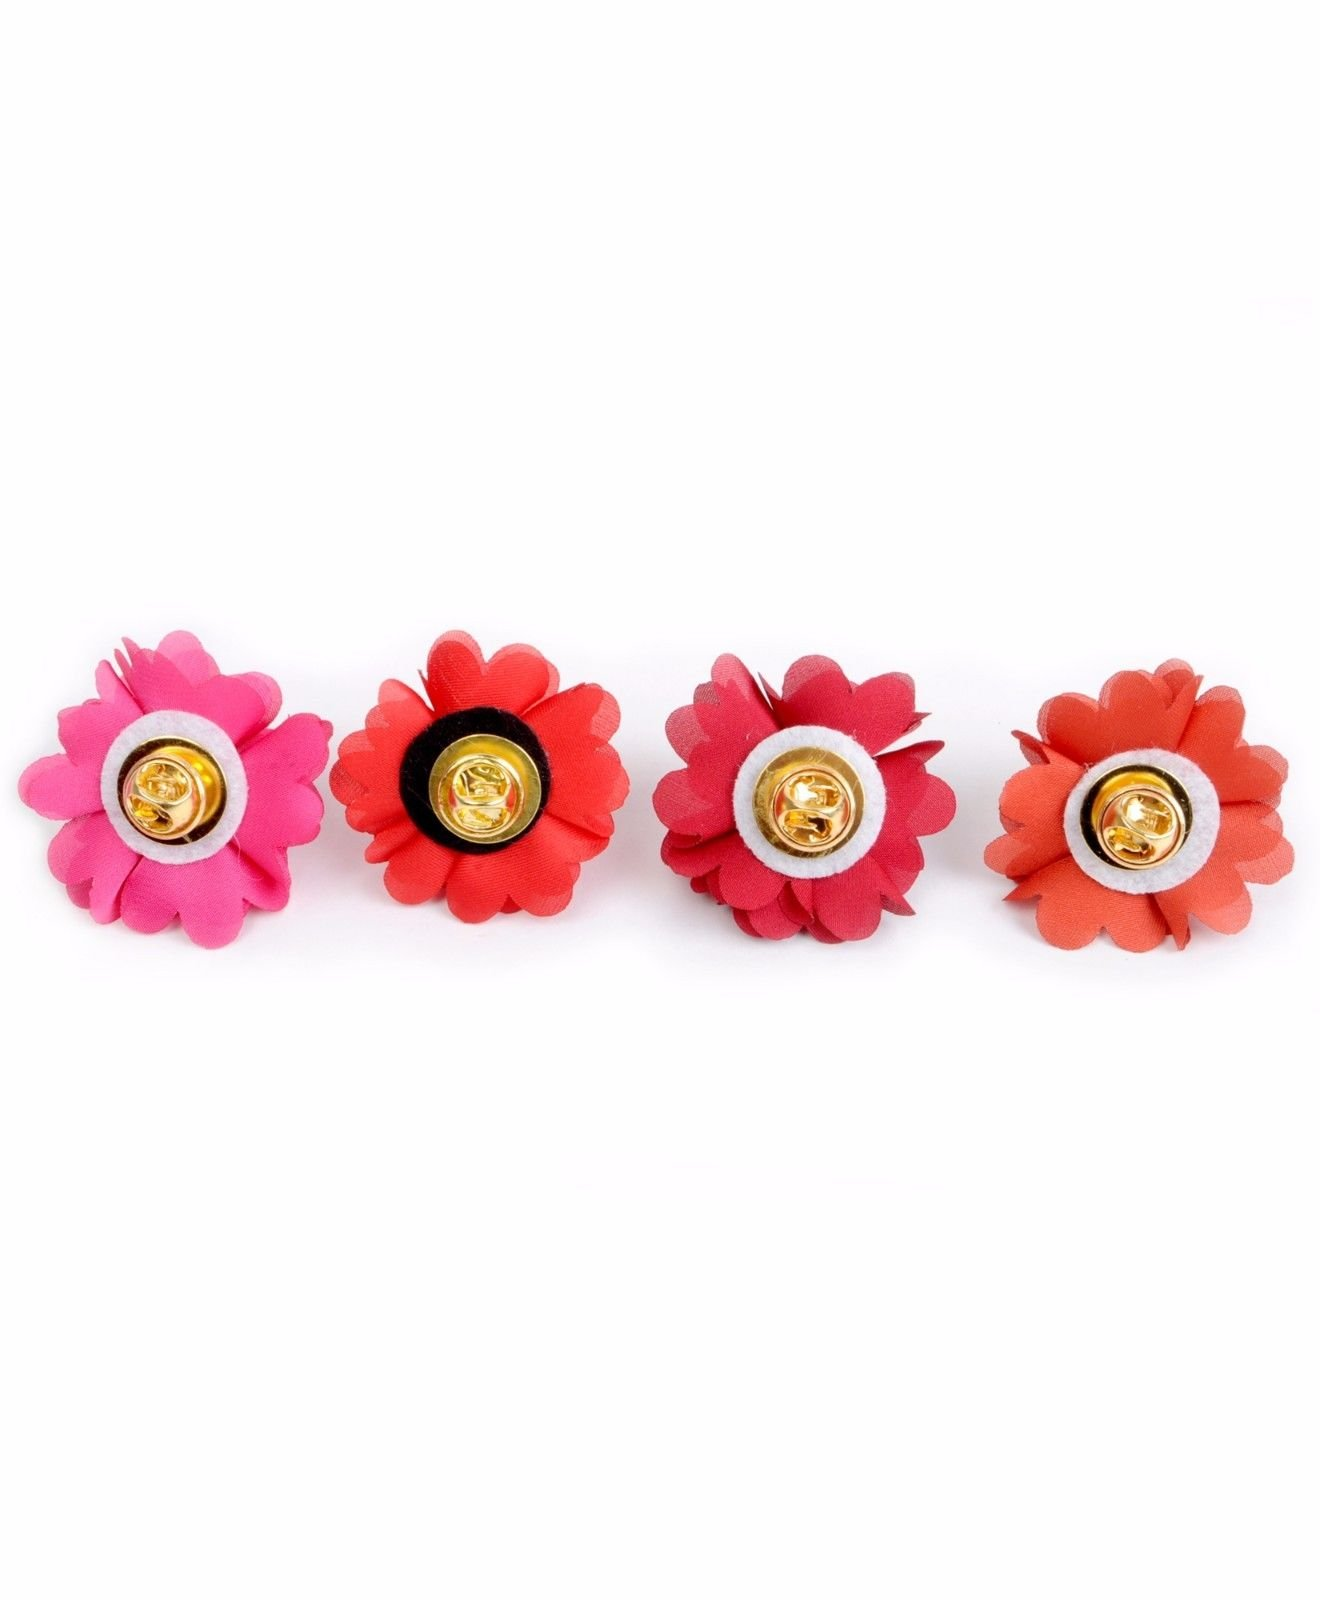 BG-Mini-Bouquet-Clutch-Back-Flower-Tuxedo-Suit-Lapel-Pins-Boutonniere-4-Pack-Set thumbnail 9